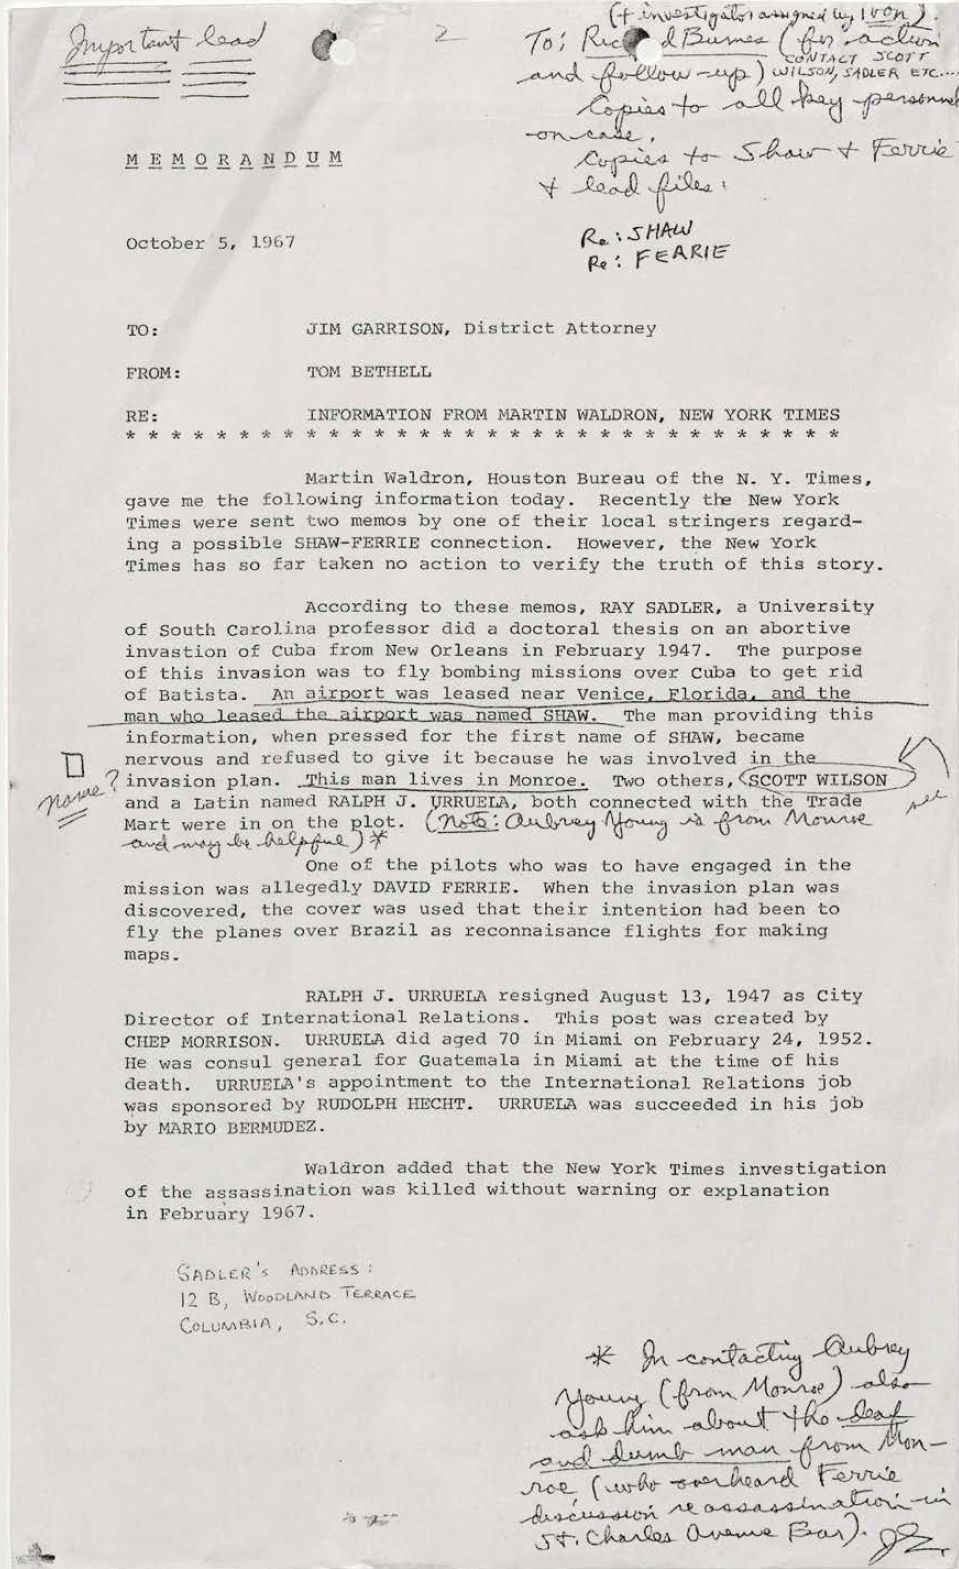 research paper on jfk How to write a research paper on john f kennedy this page is designed to show you how to write a research project on the topic you see to the left.